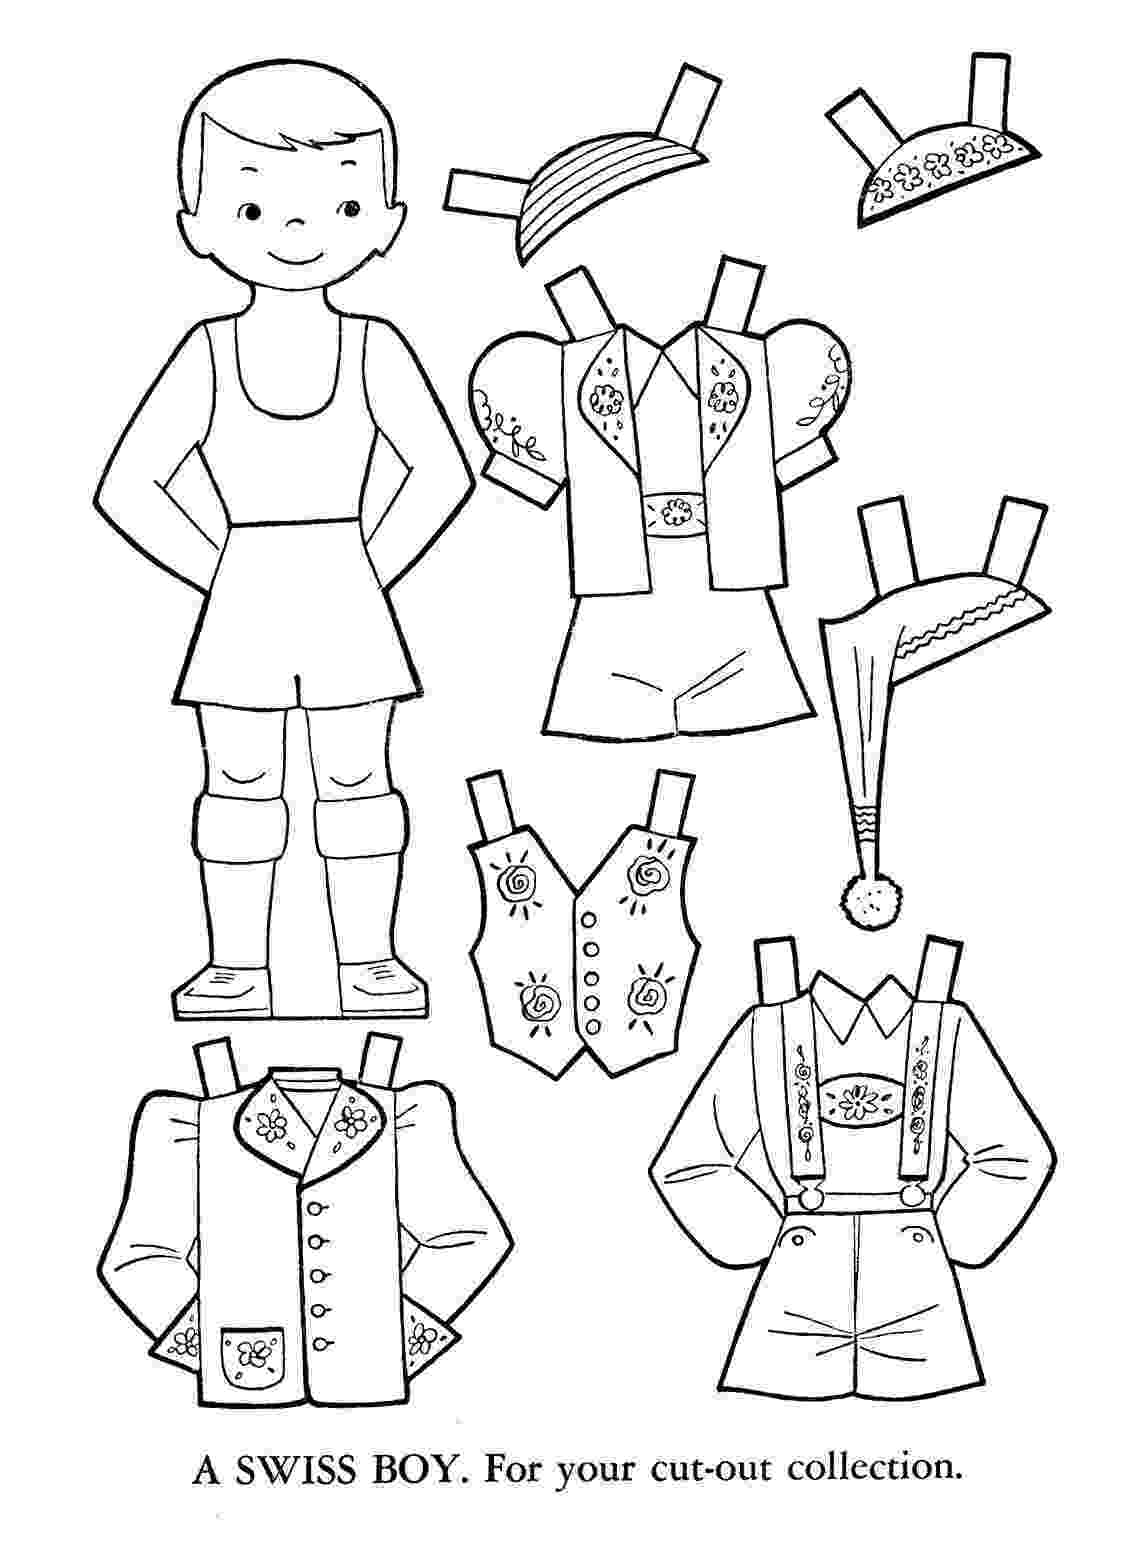 paper dress up doll monica archives paper thin personas dress paper doll up